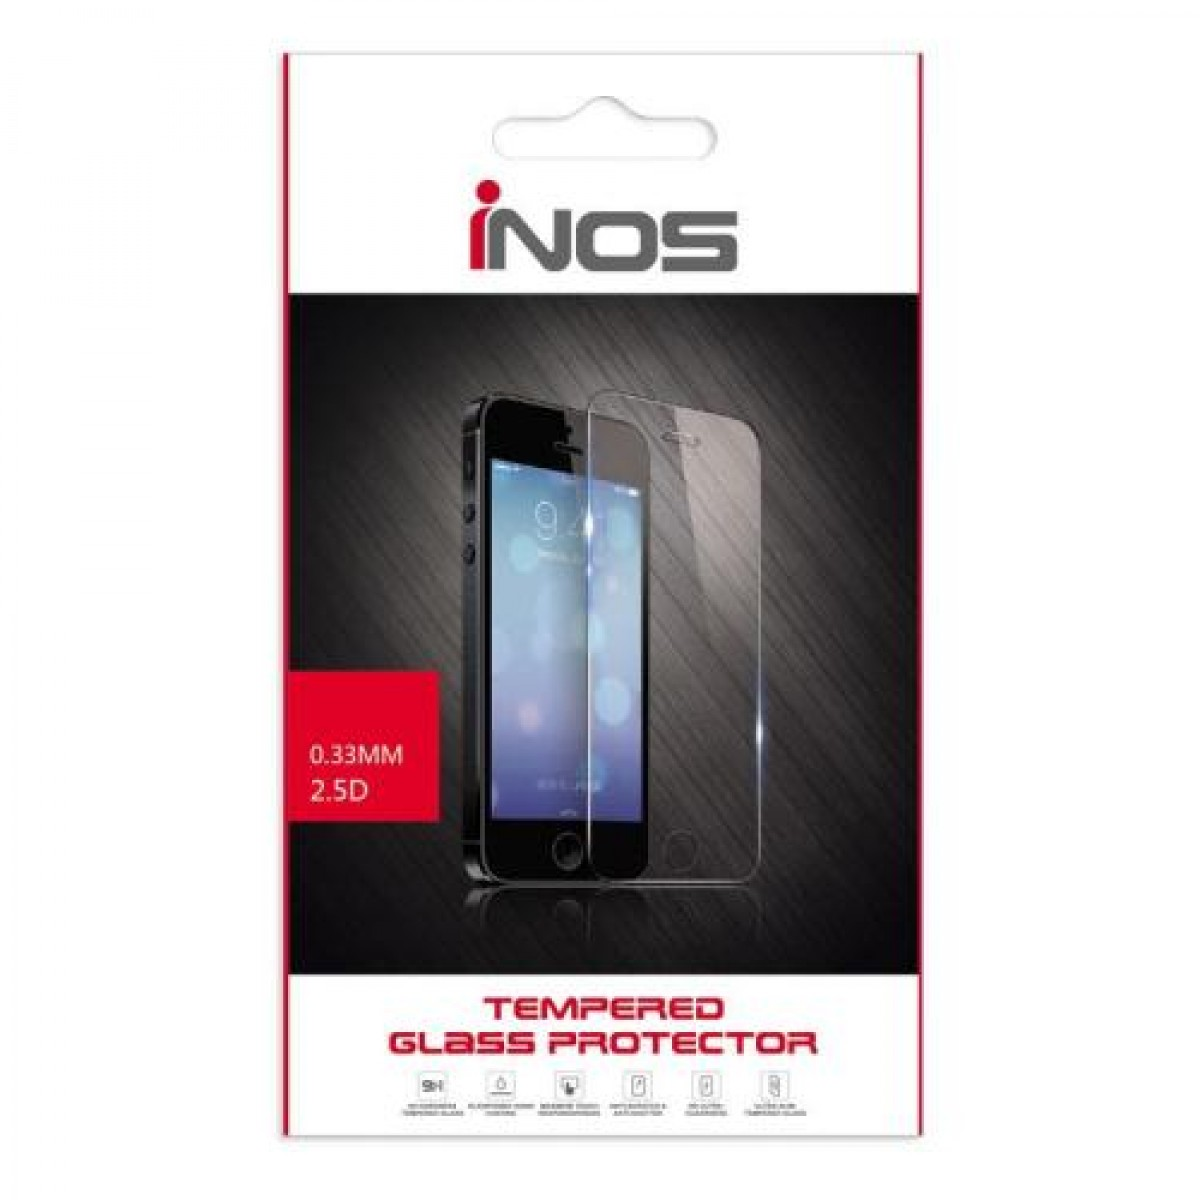 Tempered Glass inos 9H 0 33mm LG H635 G4 Stylus (1 pc) Tempered Glass